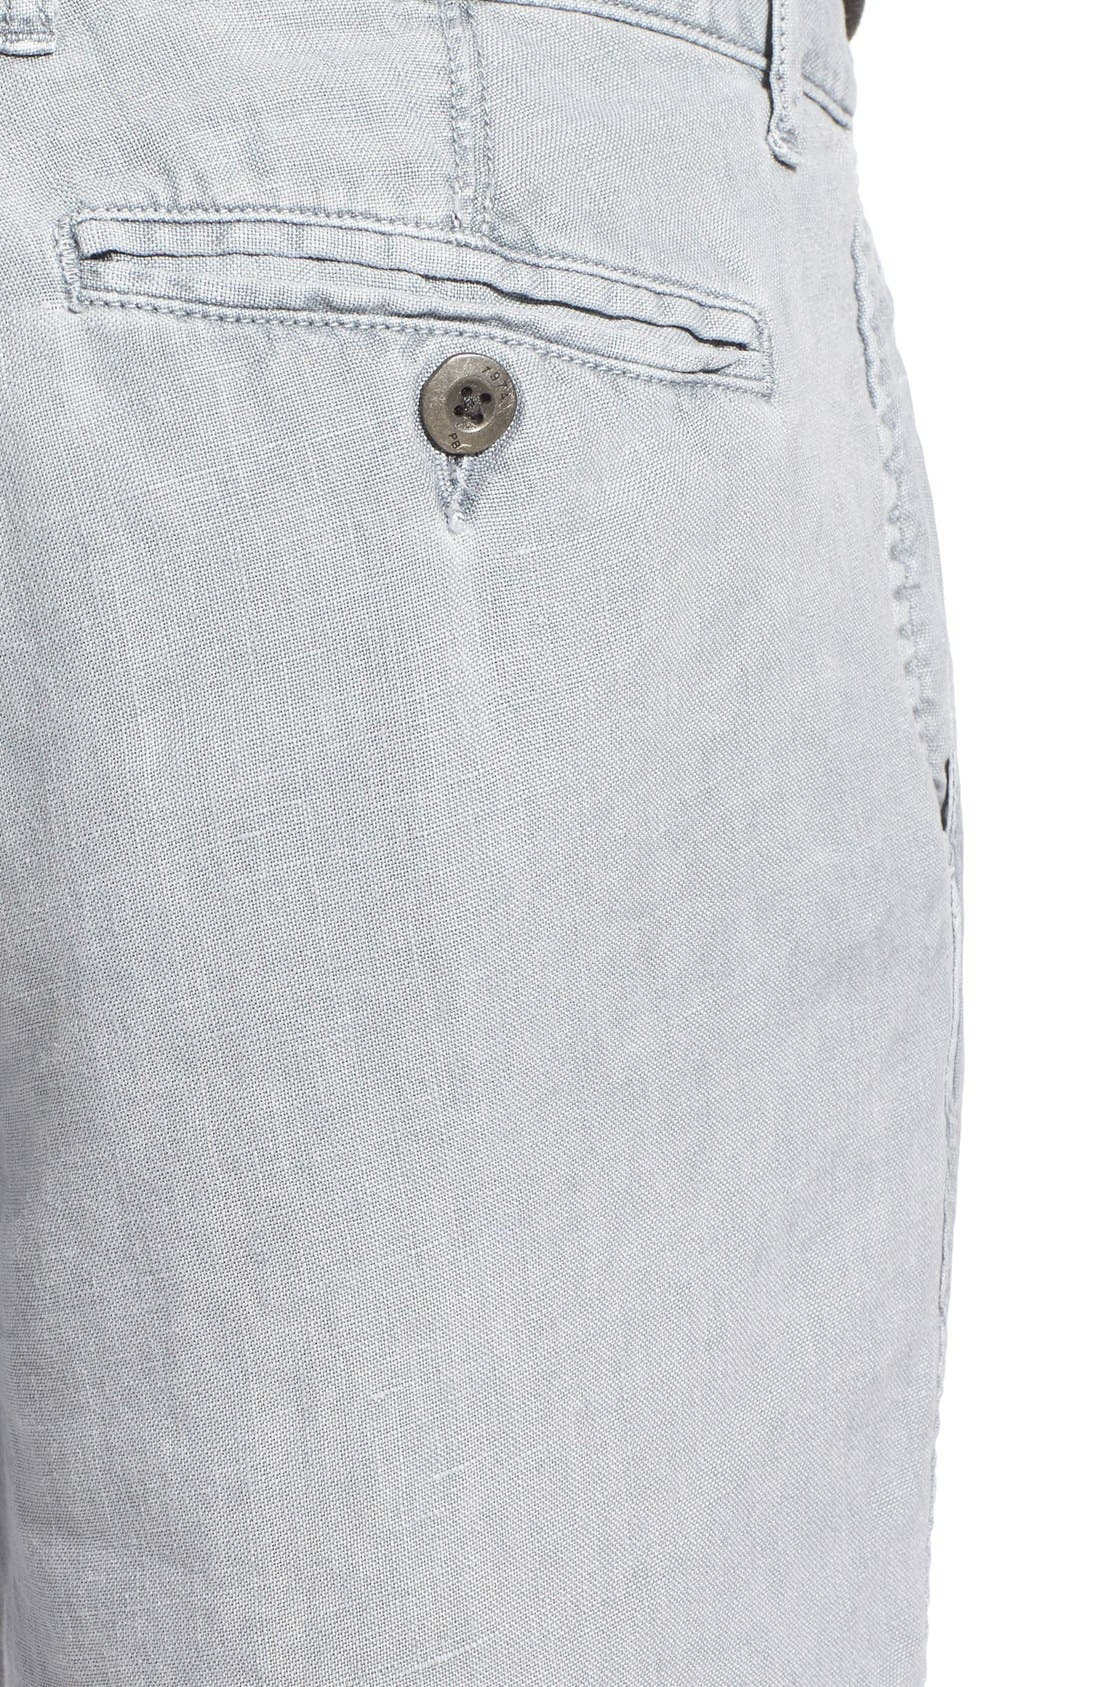 'Havana' Linen Shorts,                             Alternate thumbnail 4, color,                             Lite Grey